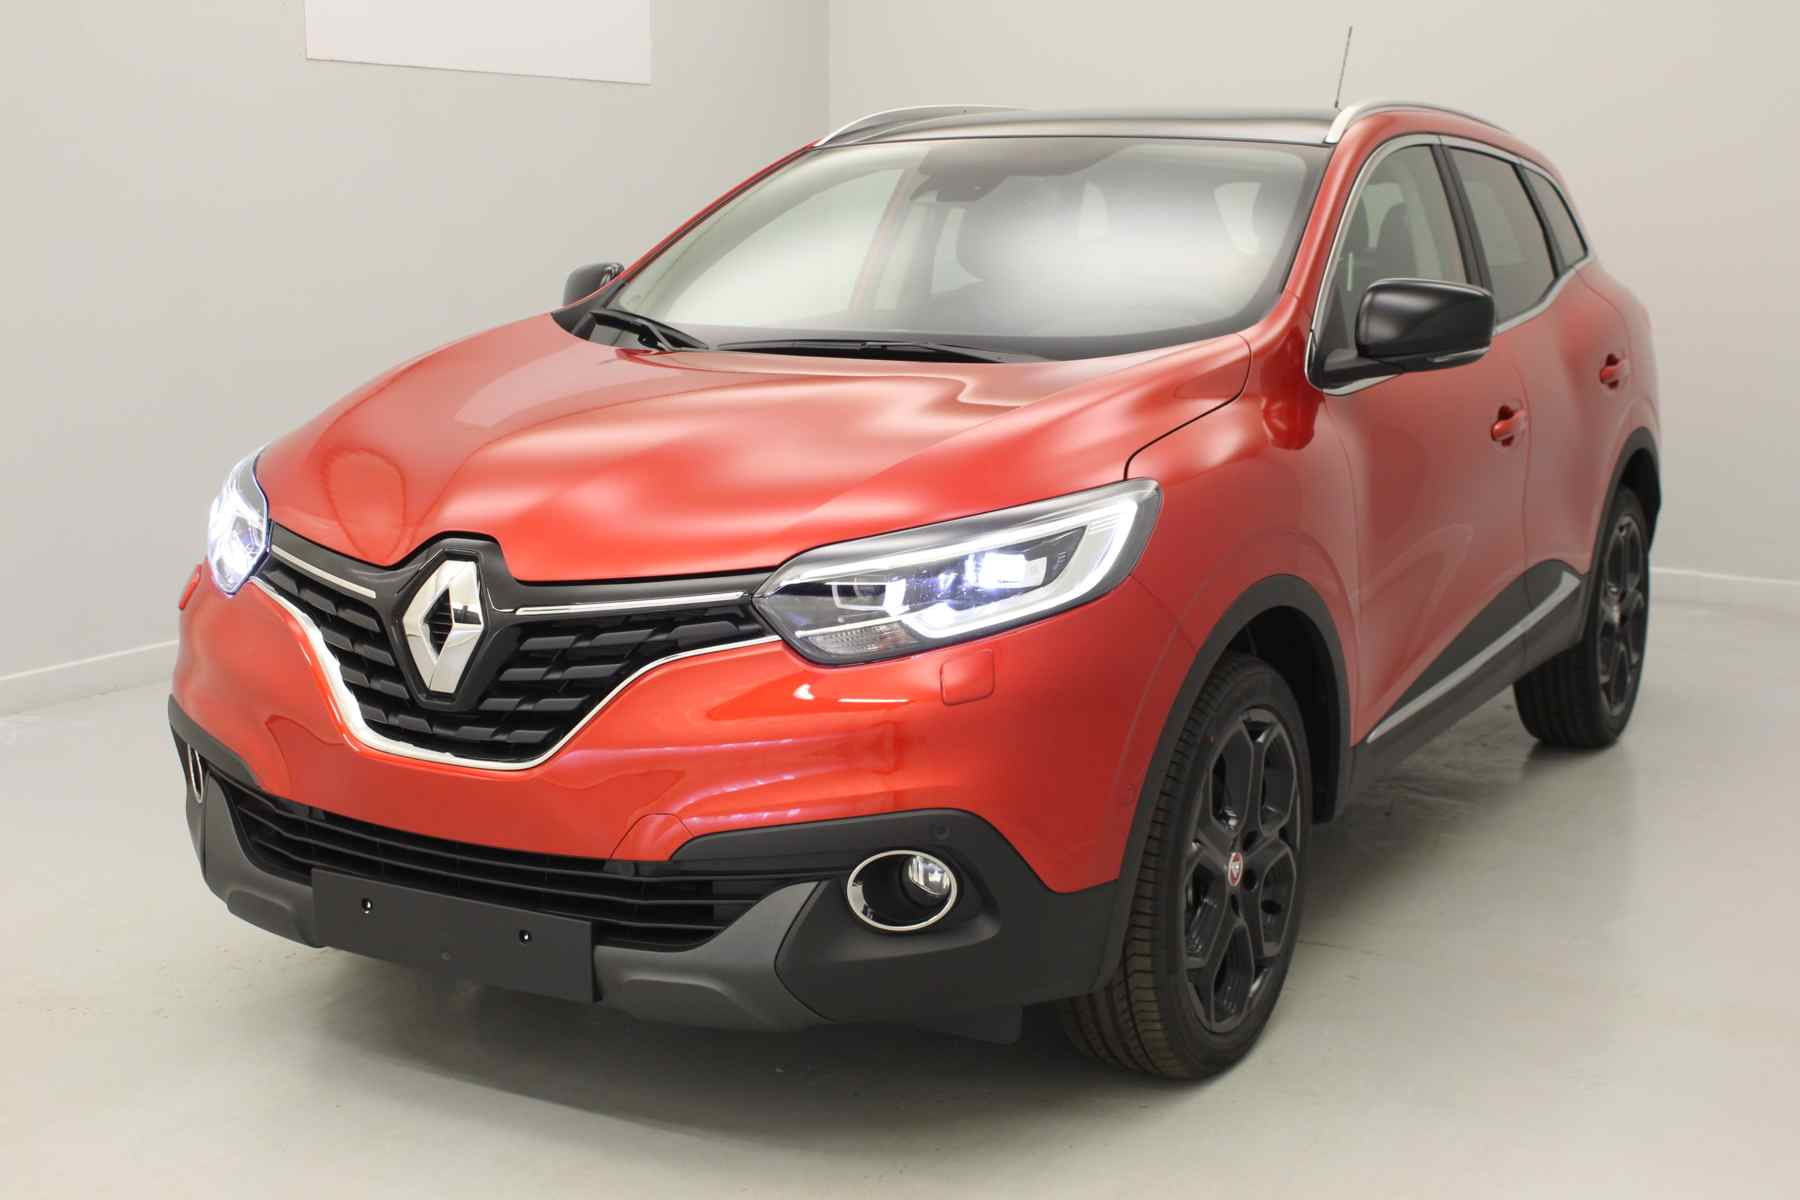 RENAULT Kadjar TCe 130 Energy SL Black Edition EDC Rouge Flamme + Toit panoramique + pare-brise chauffant avec options